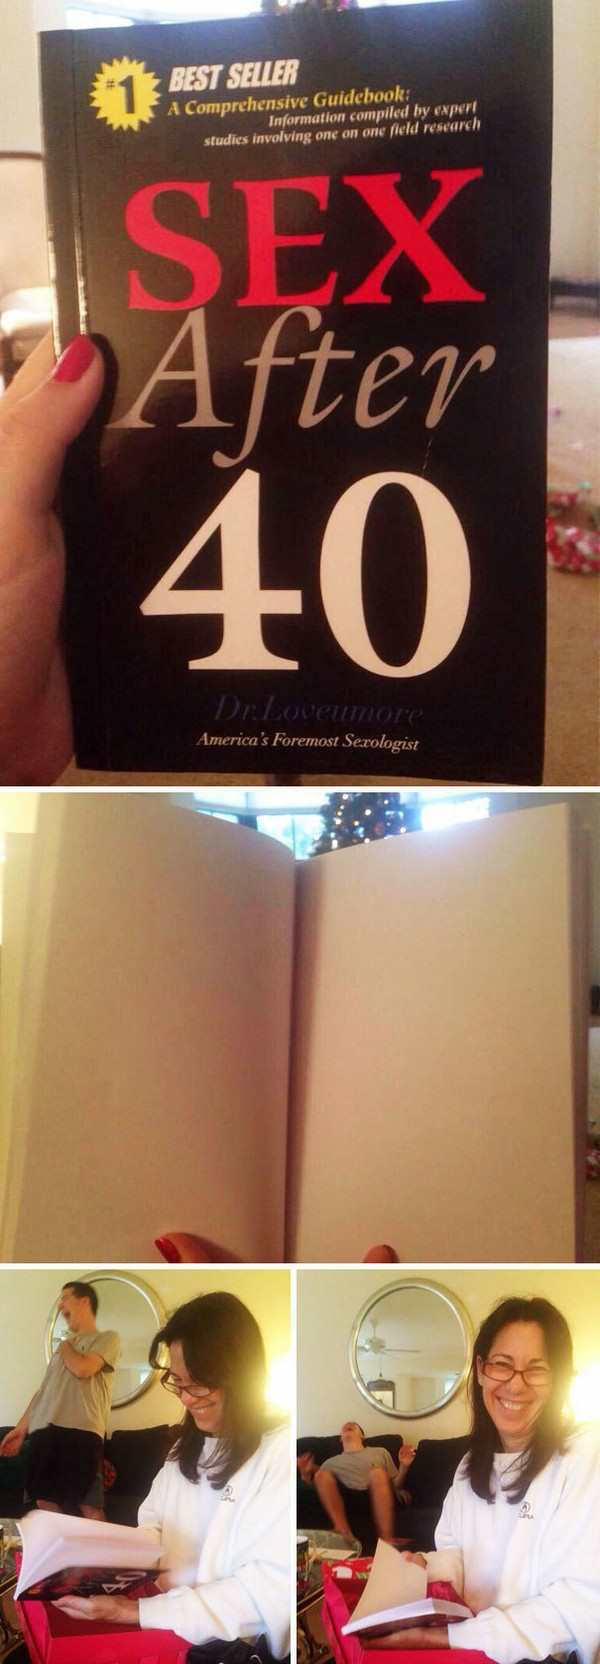 couple pranks ideas of sex after 40 book that's empty